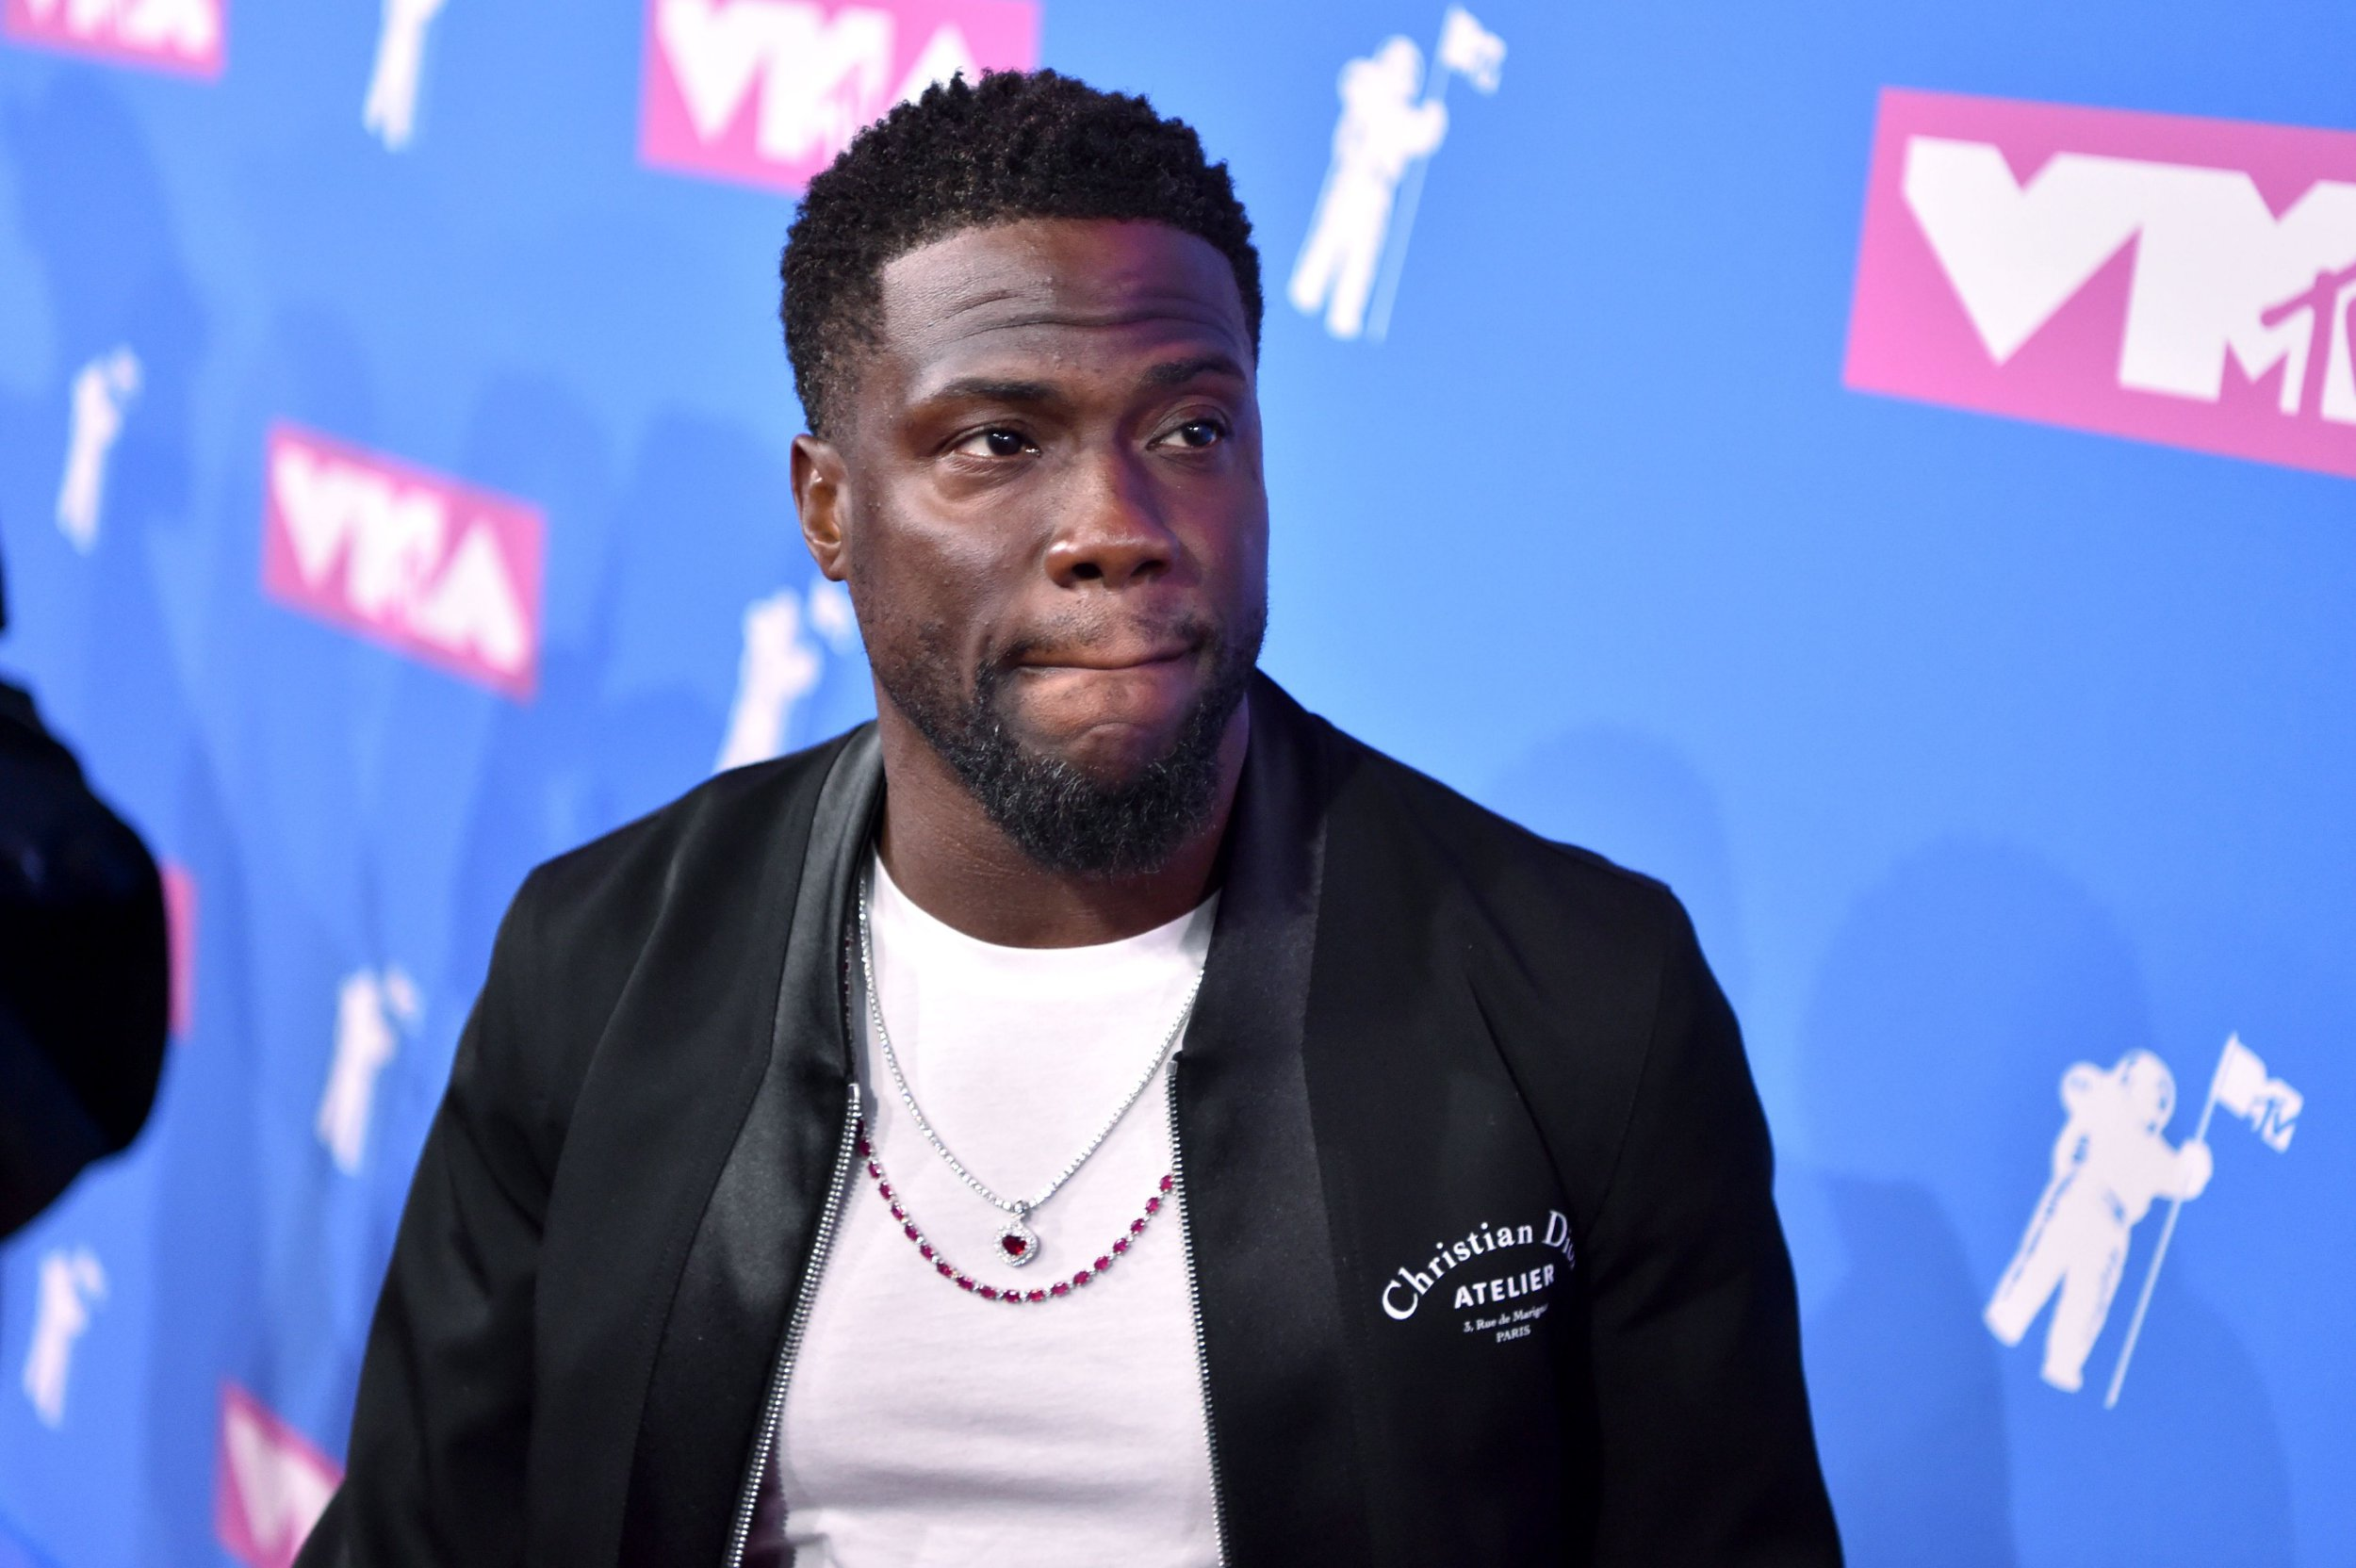 'I'm done with it': Kevin Hart confirms he will not host the Oscars